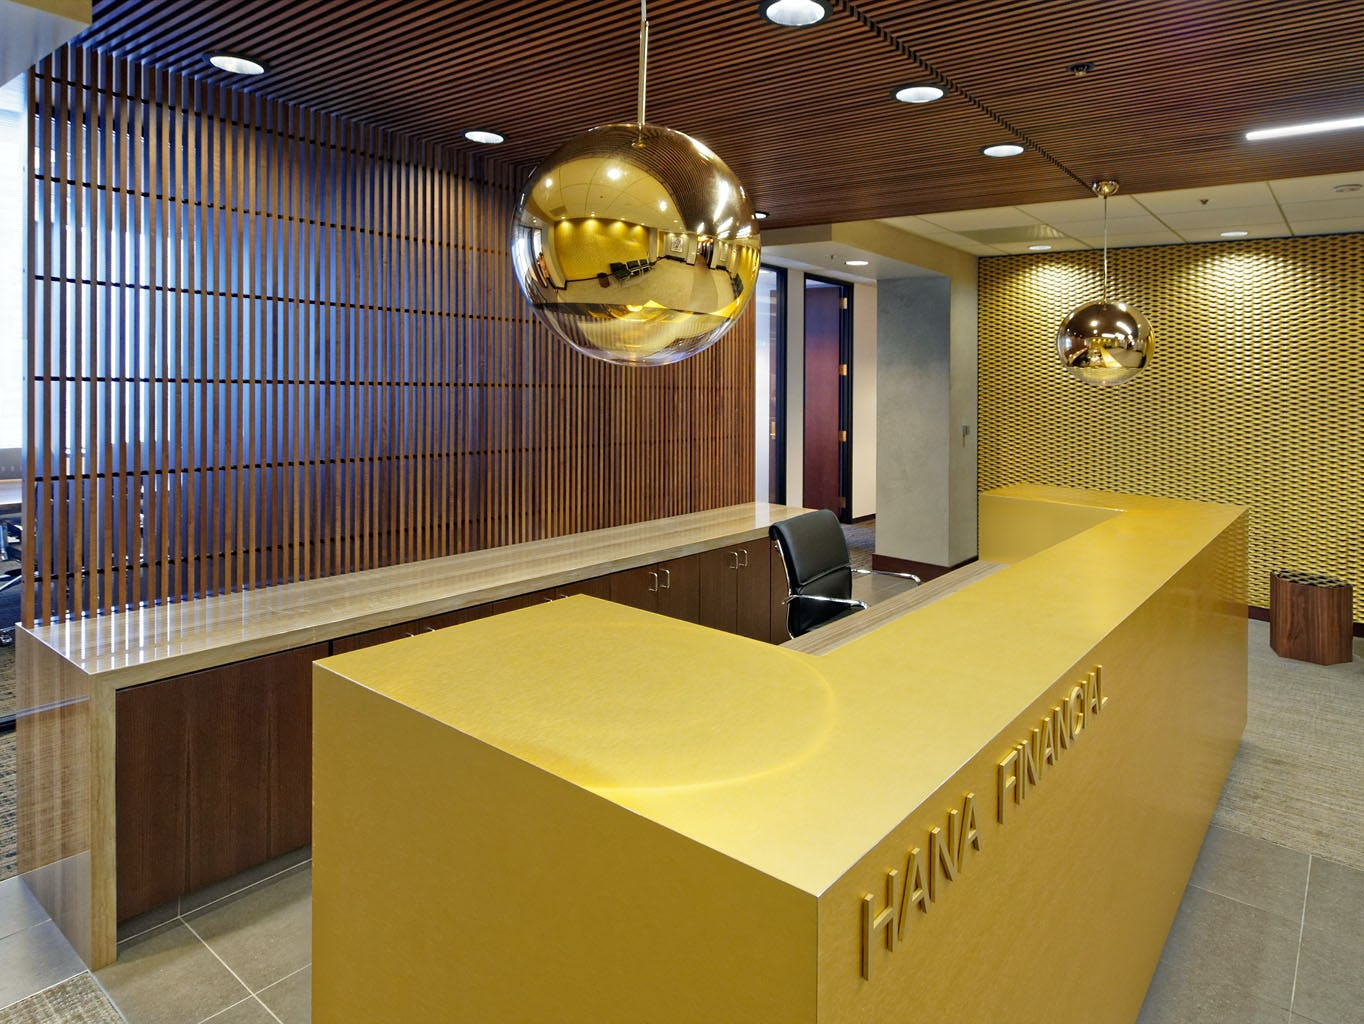 Hana financial 5